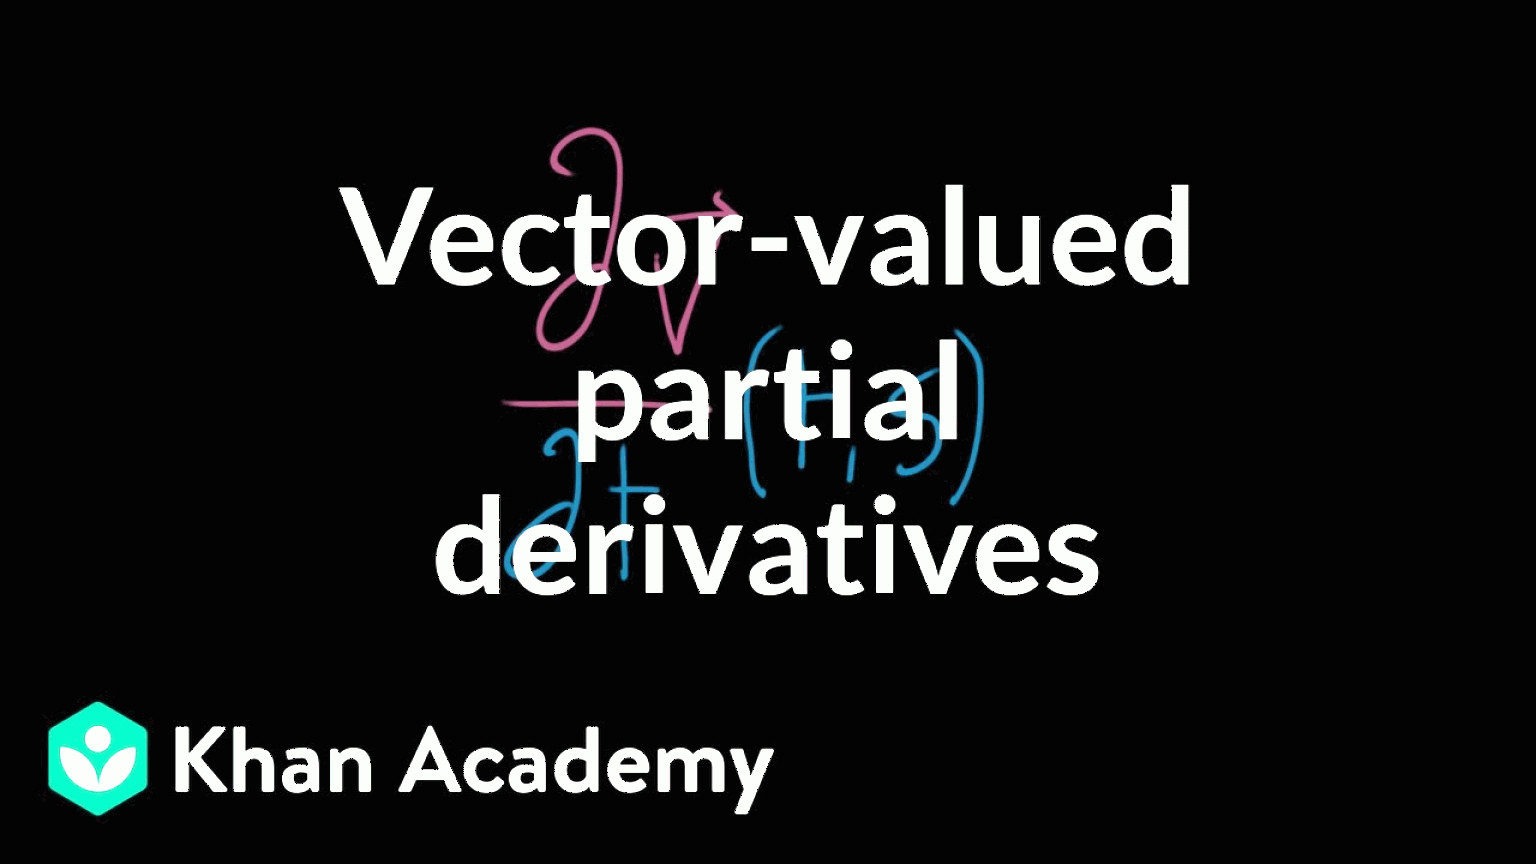 Vectors And Vector Valued Functions: Computing The Partial Derivative Of A Vector Valued Function